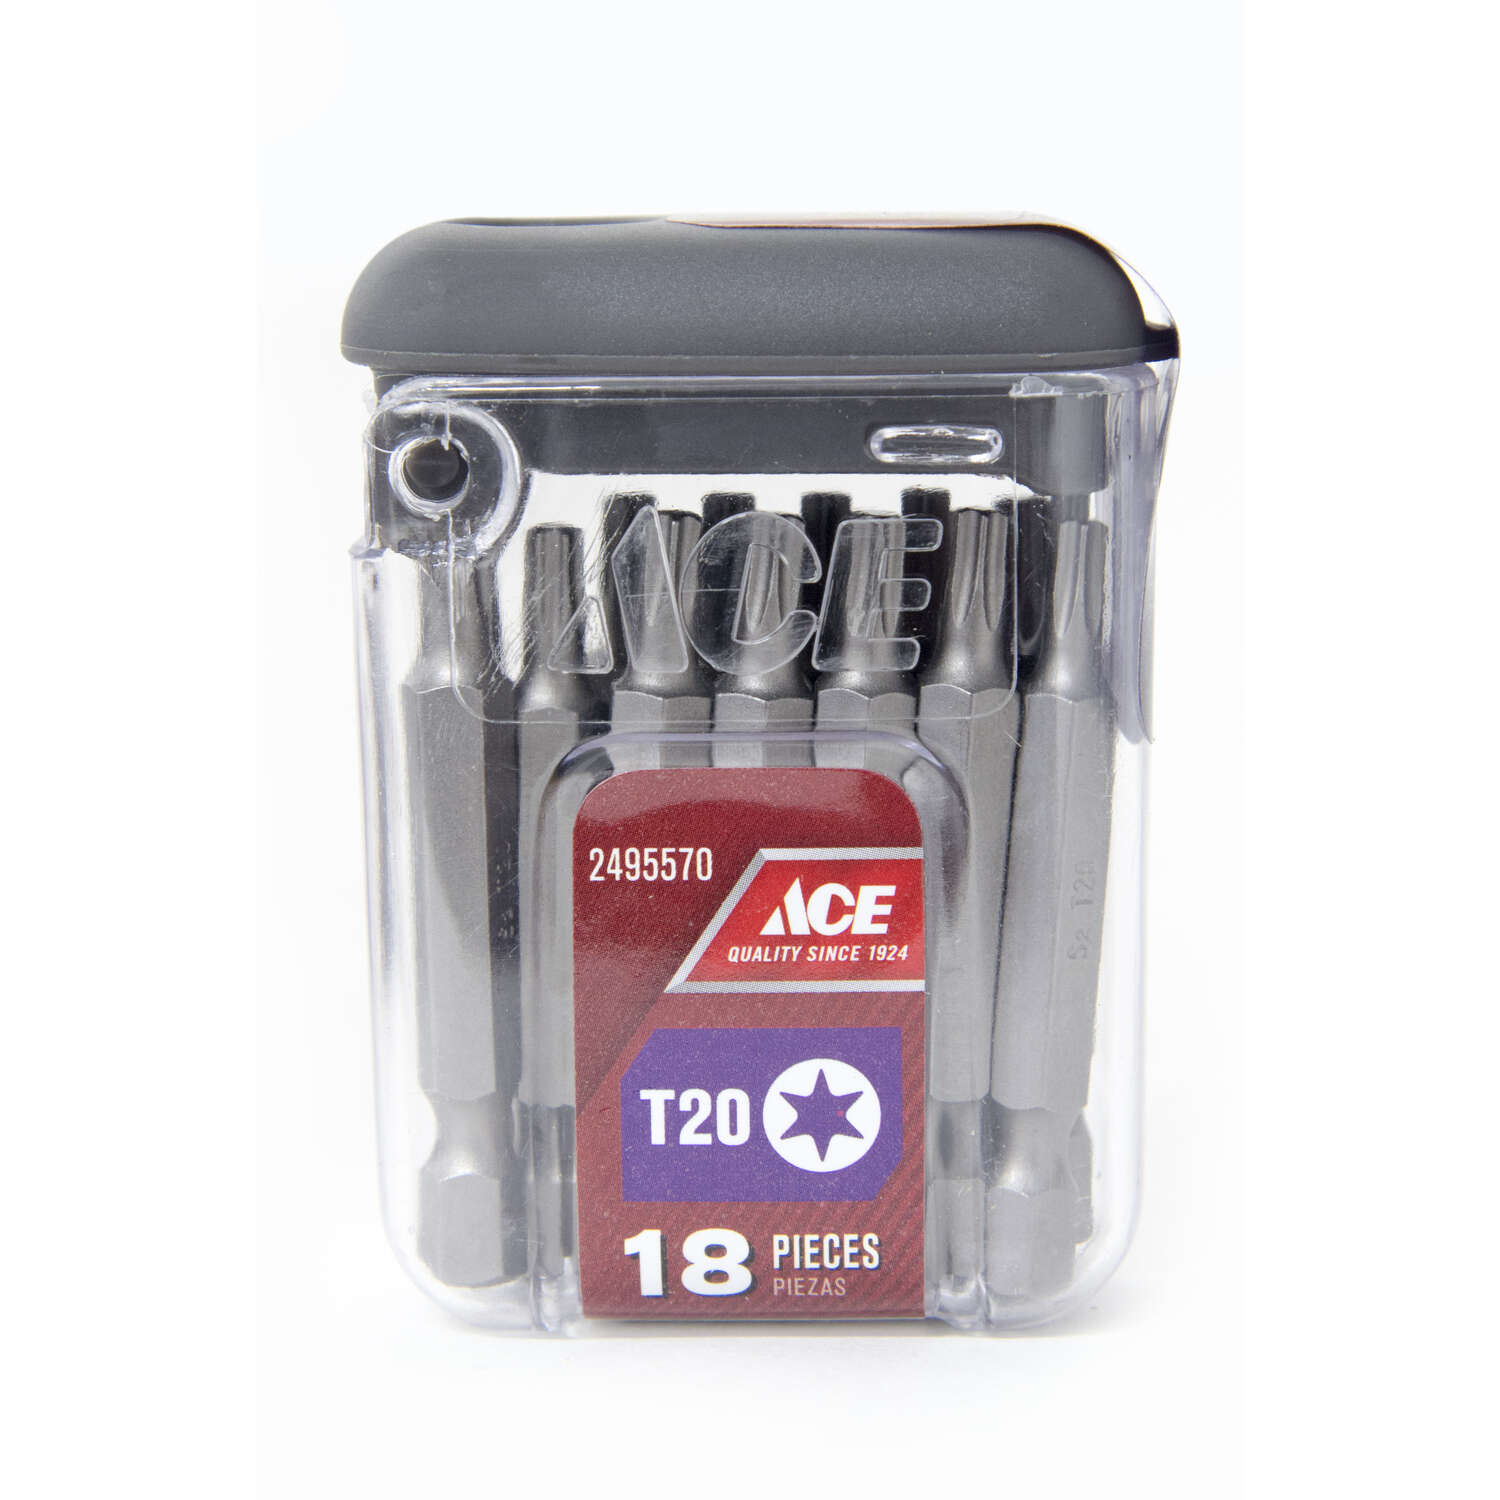 Ace Torx T20 x 2 in. L Screwdriver Bit S2 Tool Steel 18 pc.